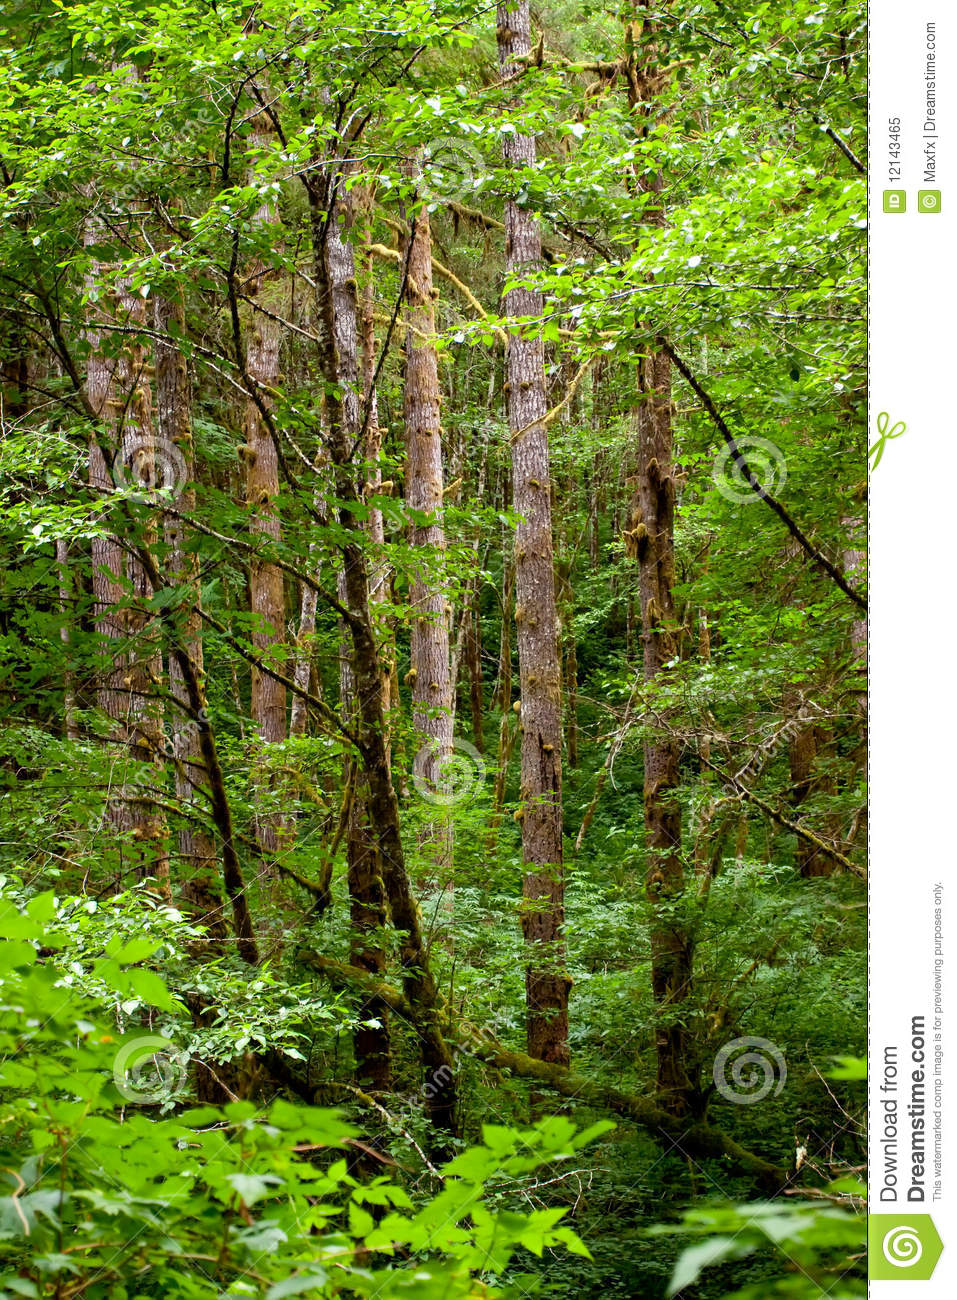 Trees With Moss Royalty Free Stock Photo - Image: 12143465